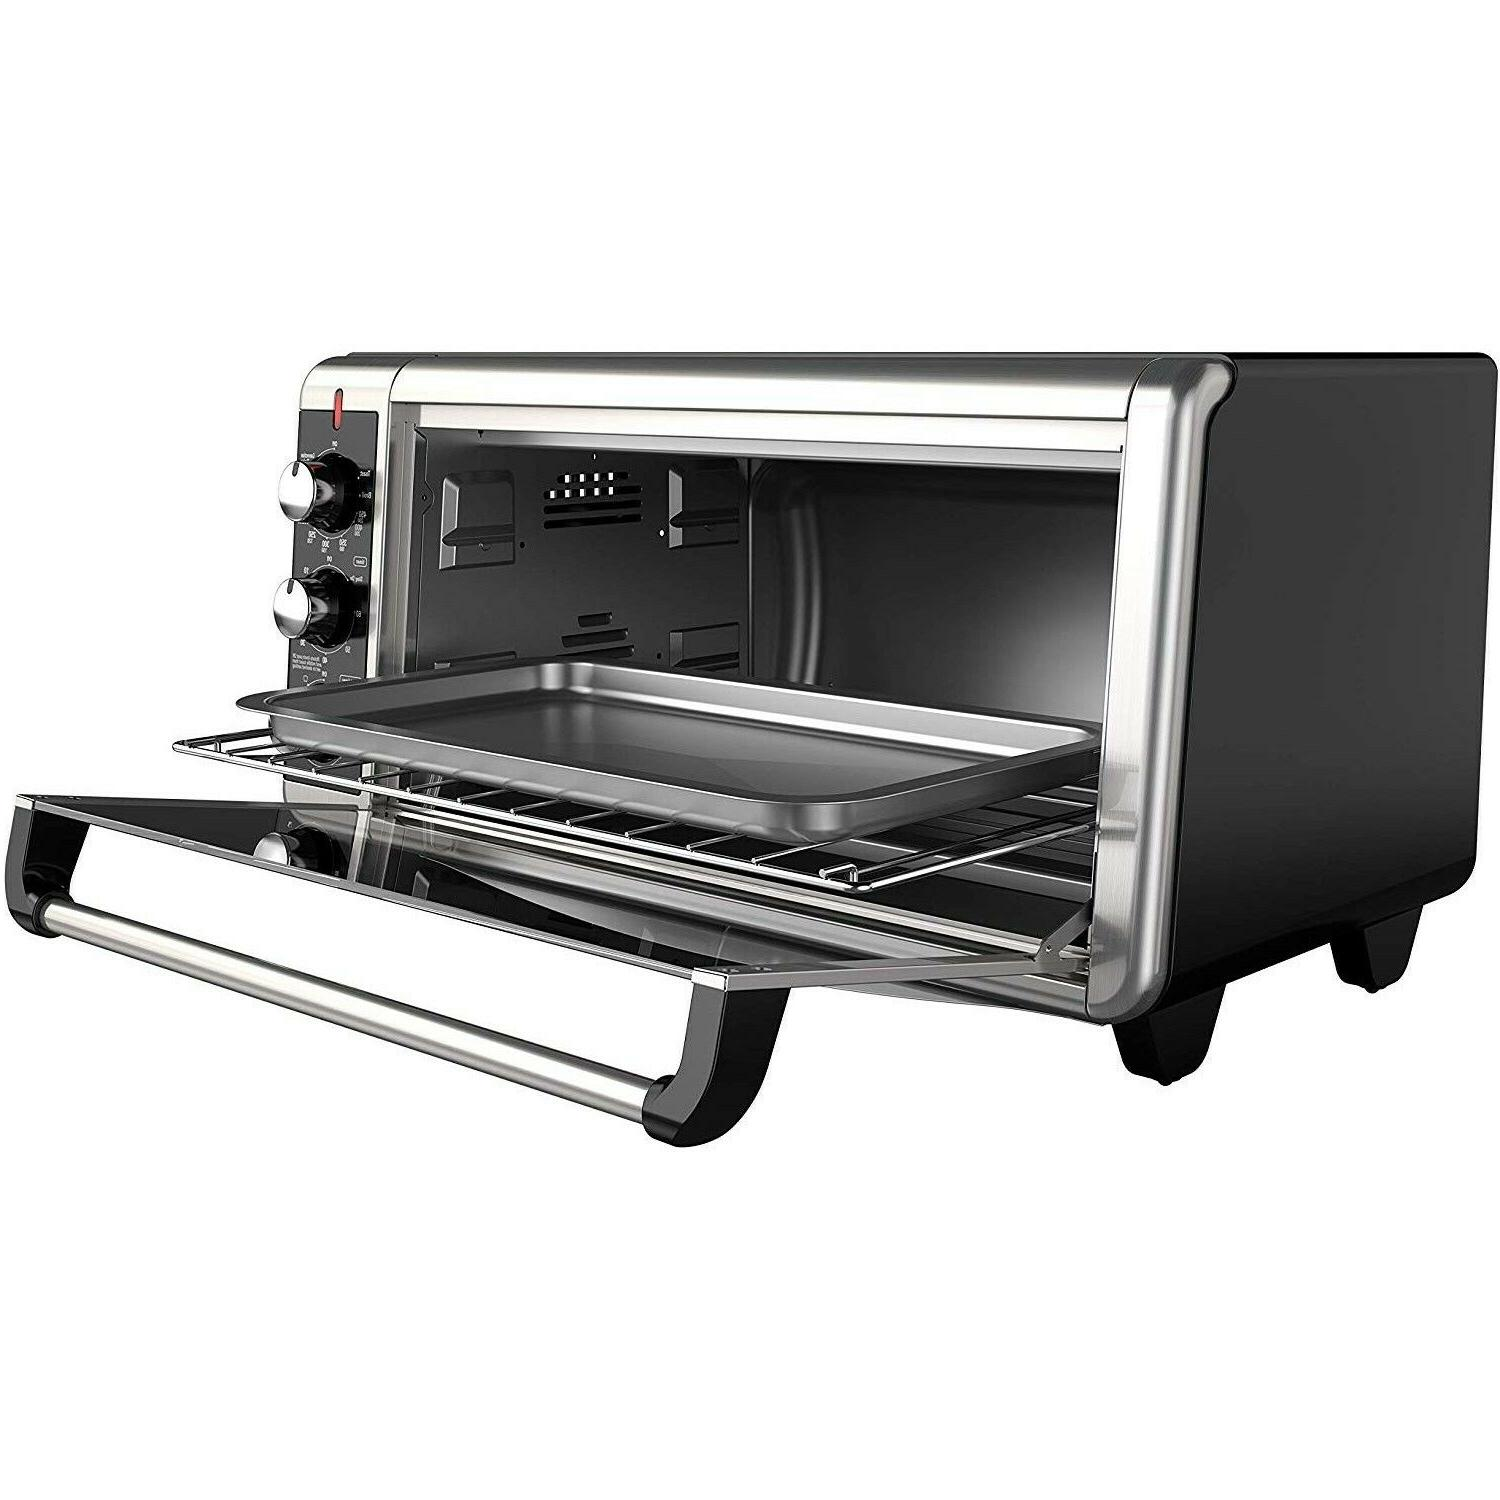 Extra Wide Countertop Toaster 8-Slice Pan